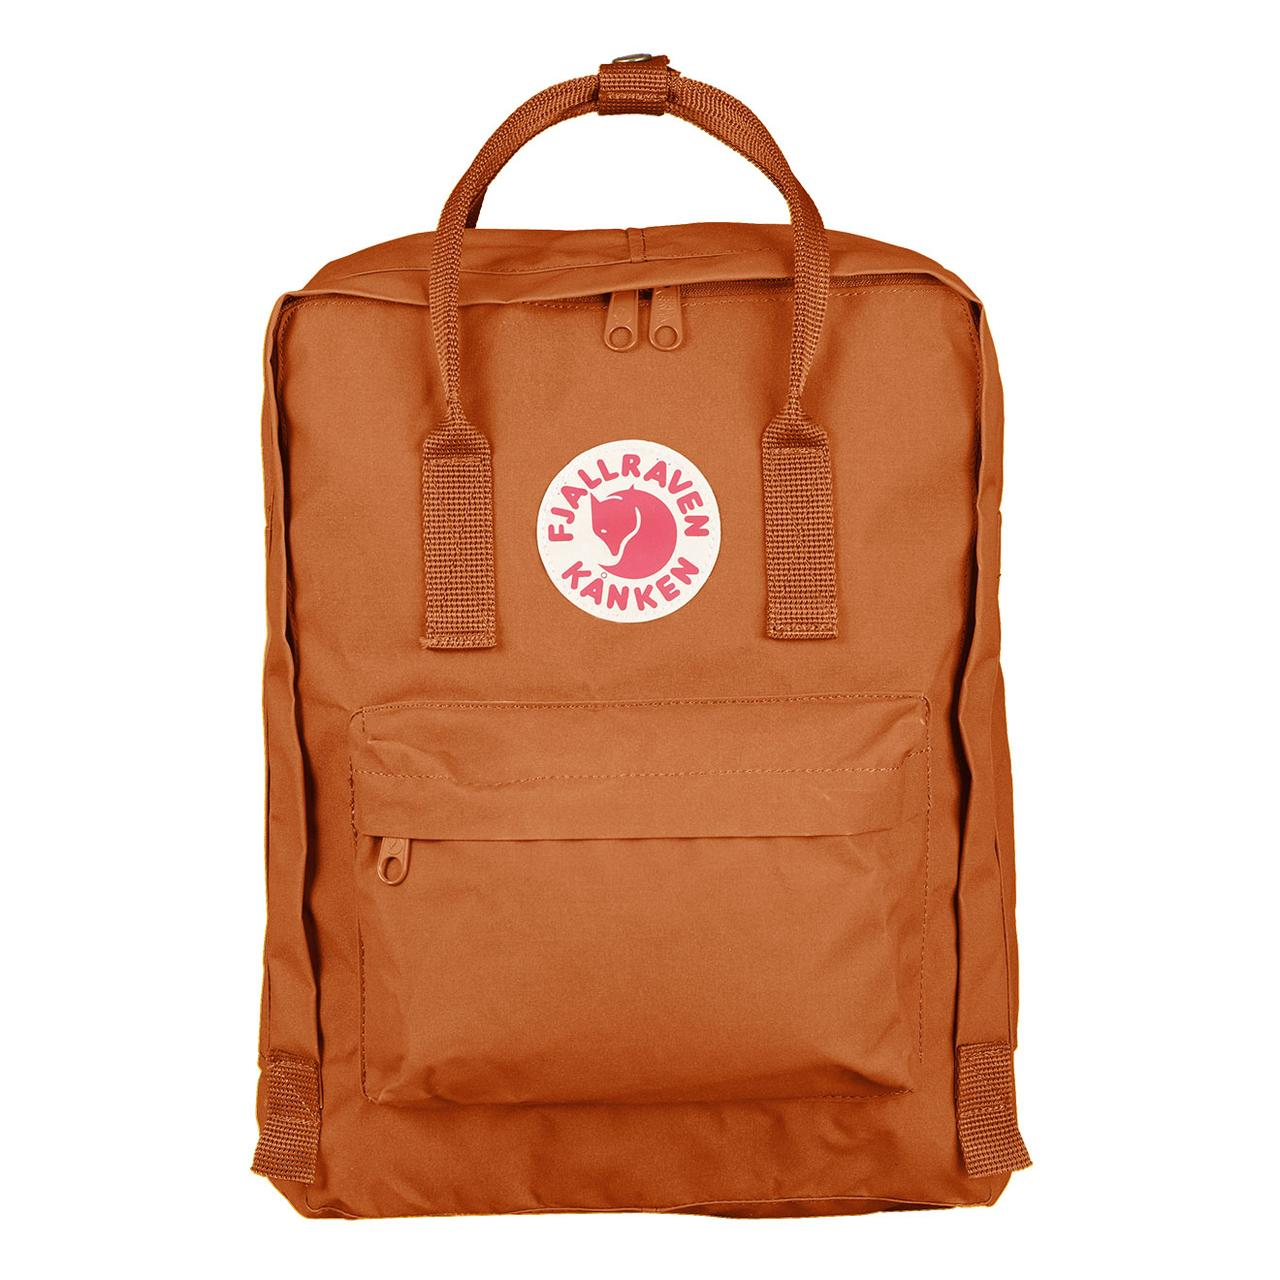 Рюкзак Fjarvallen Kanken Classiс Burnt Orange (реплика)